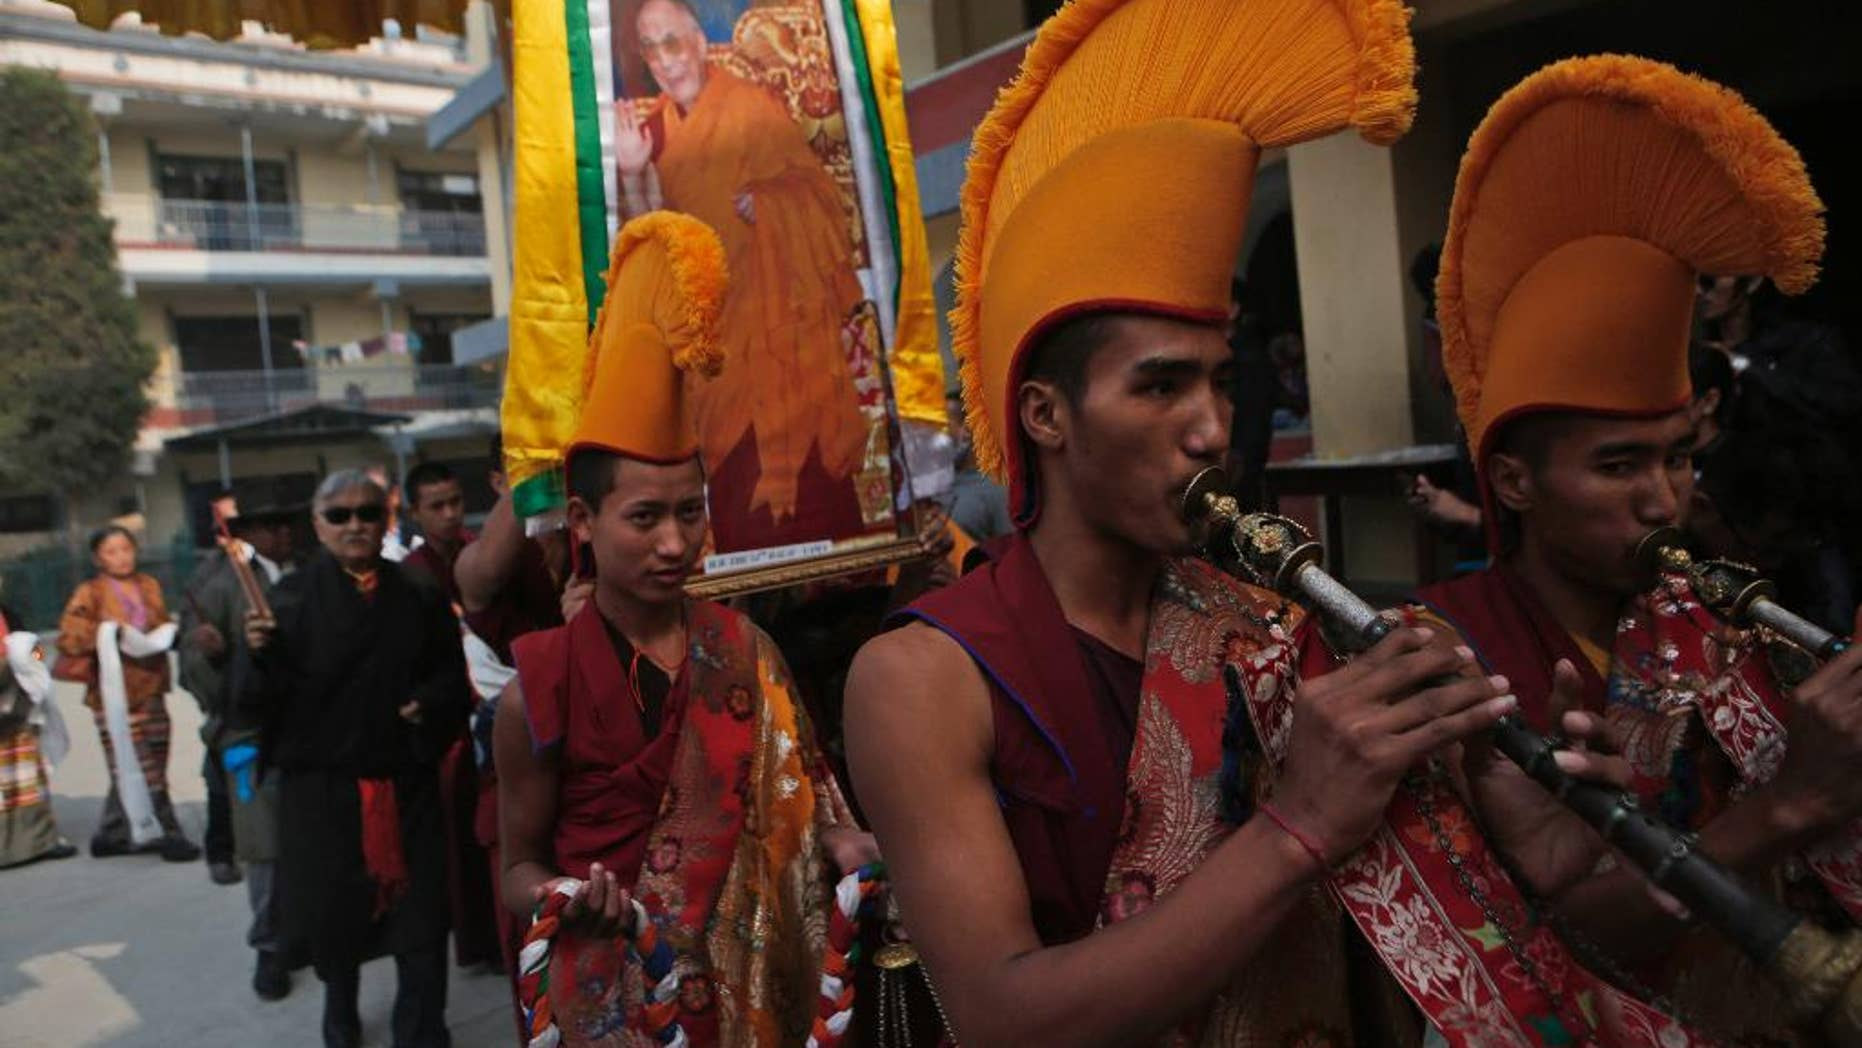 Tibetan monks carry a portrait of their spiritual leader the Dalai Lama and play traditional instruments during a special prayer ceremony on the third day of the Tibetan New Year celebrations in Kathmandu, Nepal, Wednesday, March 1, 2017. (AP Photo/Niranjan Shrestha)